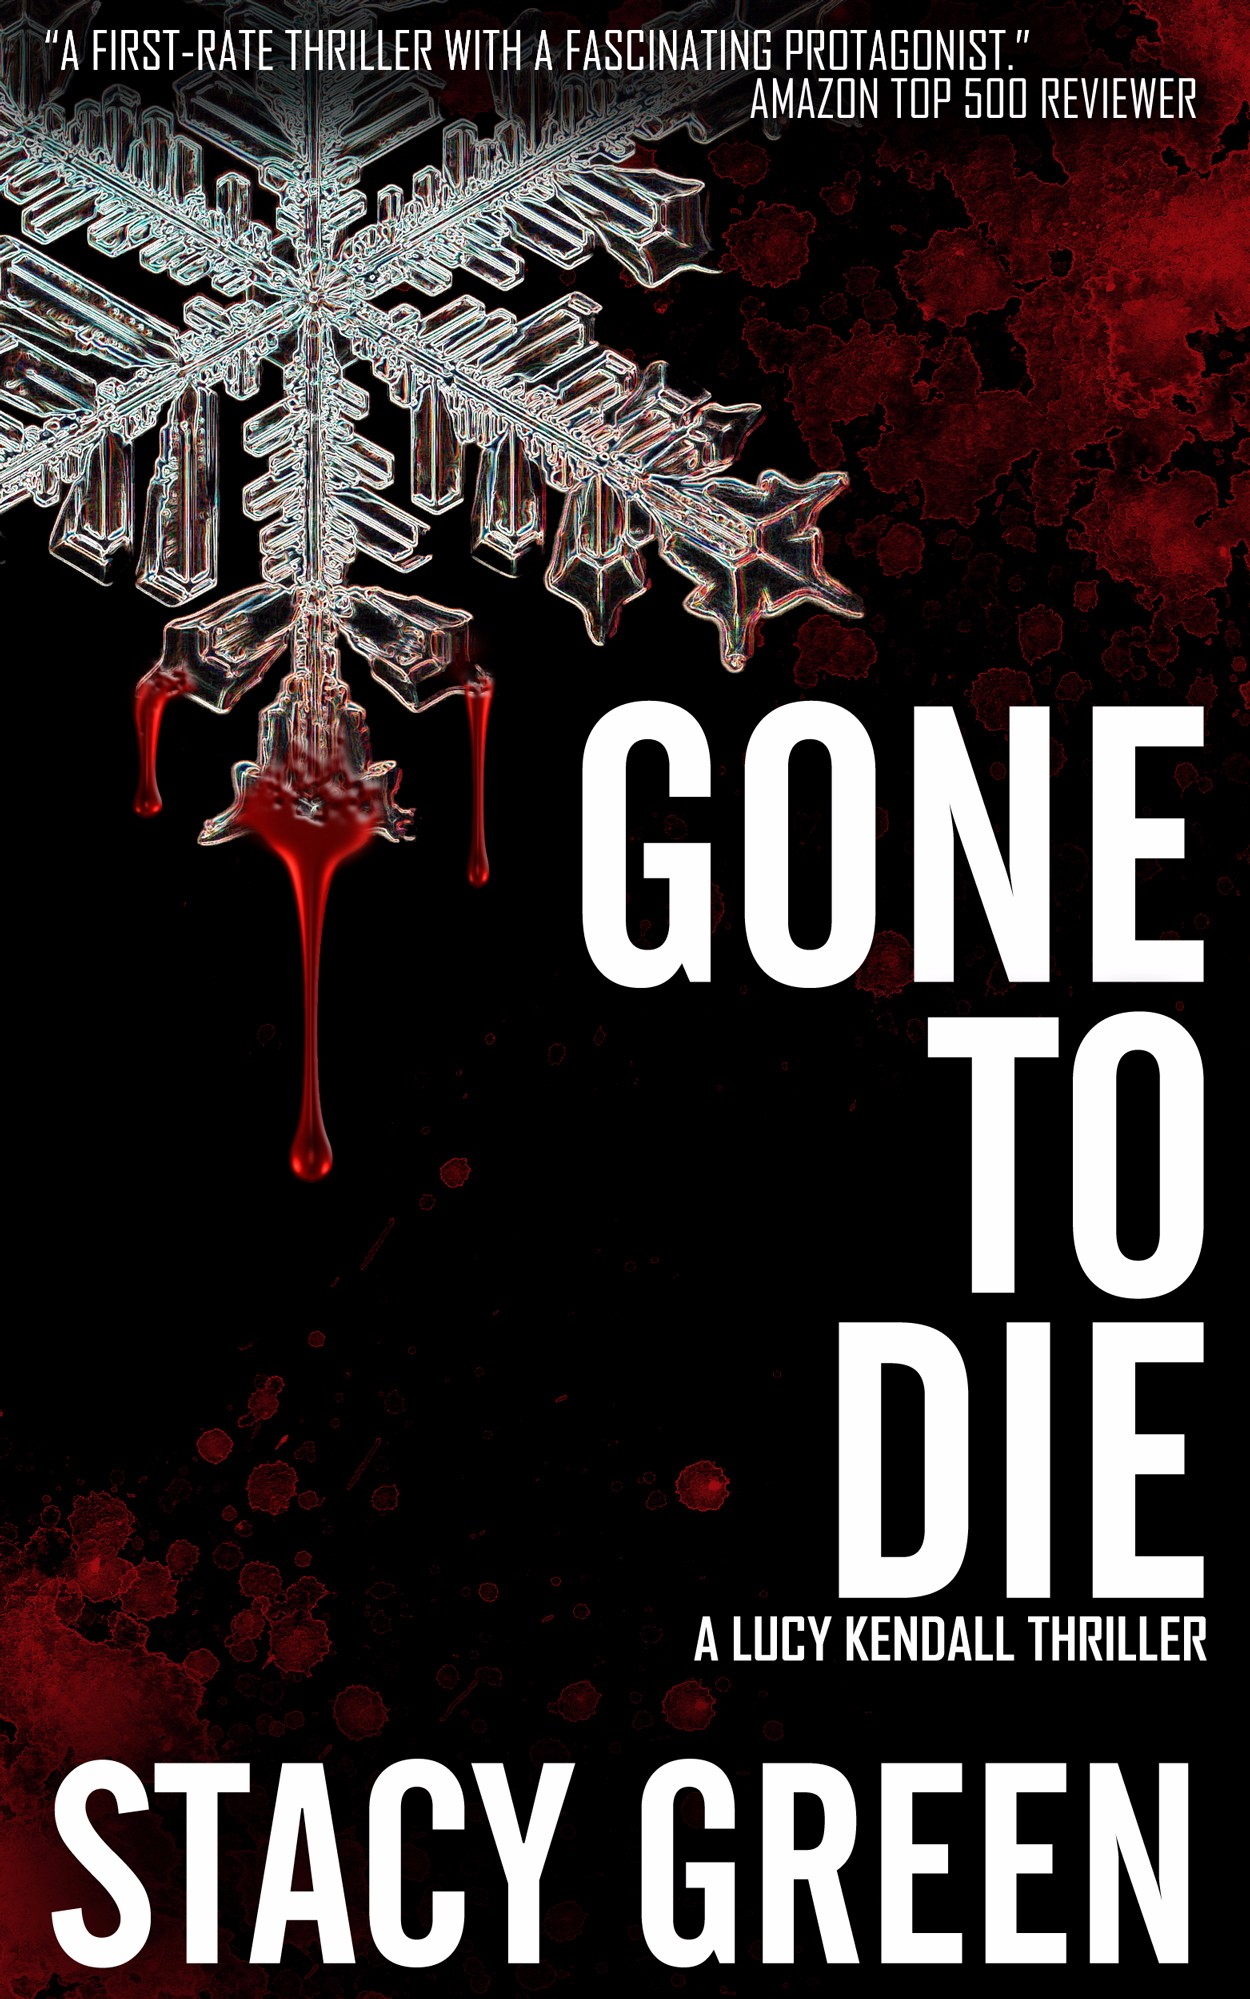 Gone to Die by Author Stacy Green - A Lucy Kendall Thriller